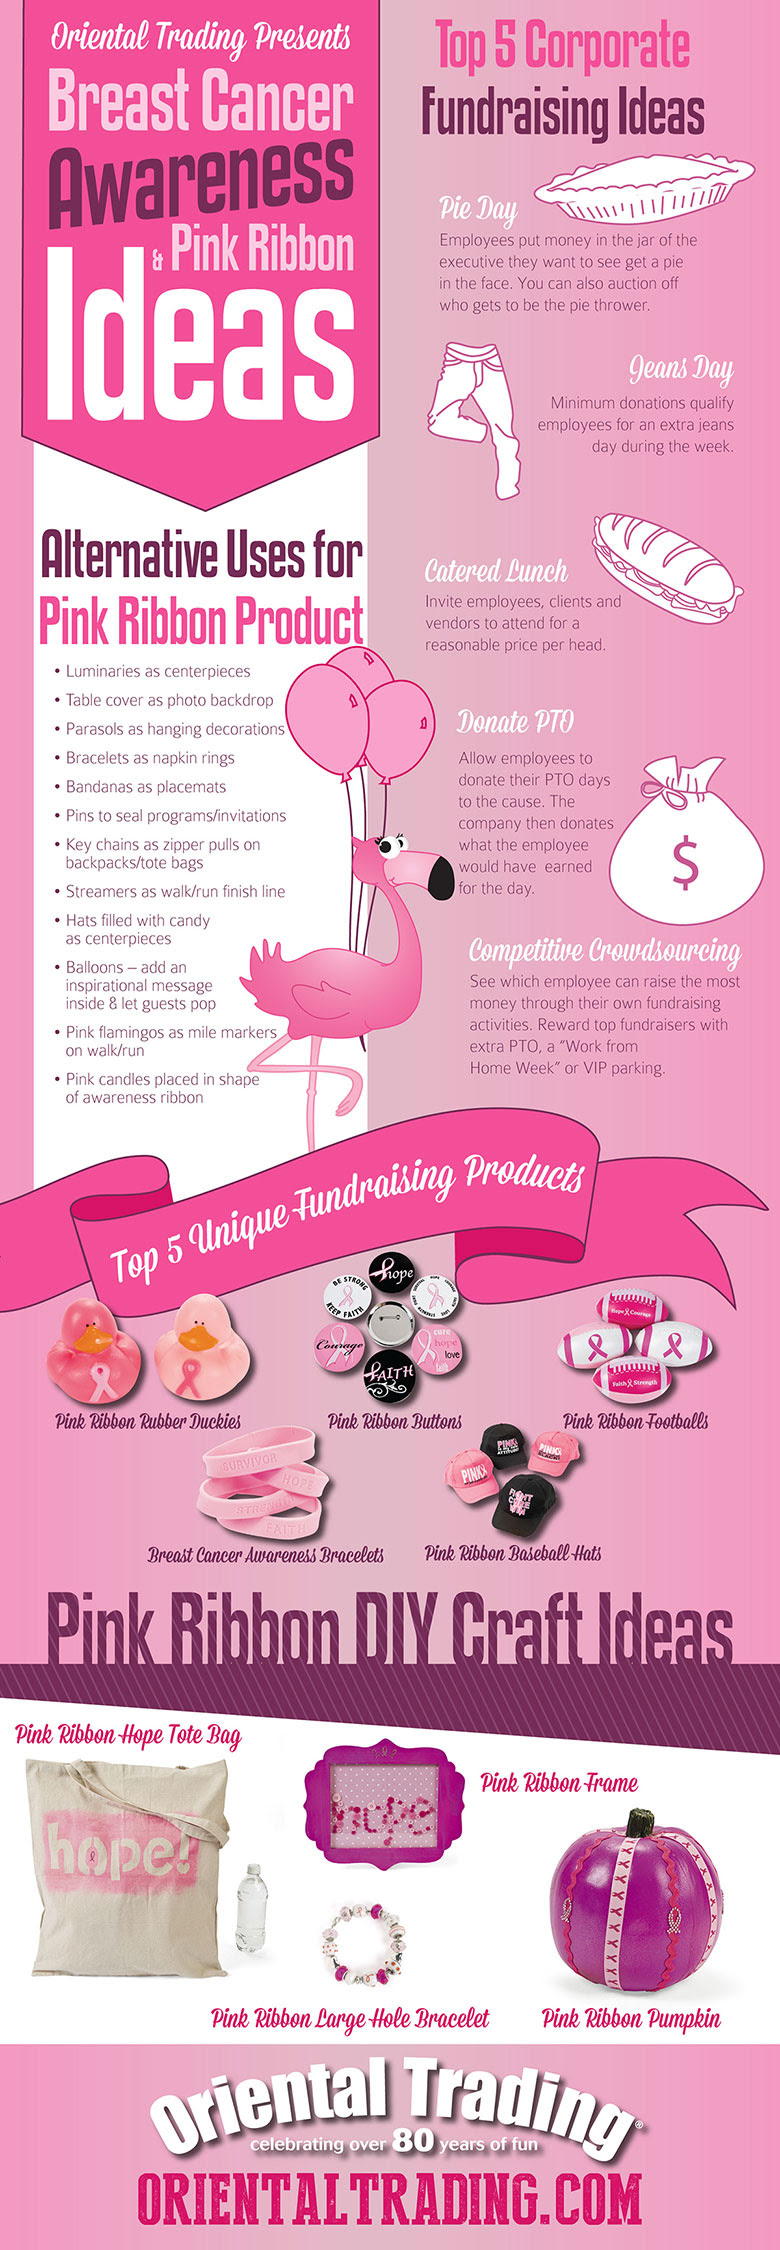 Breast Cancer Awareness Infographic by OrientalTrading.com